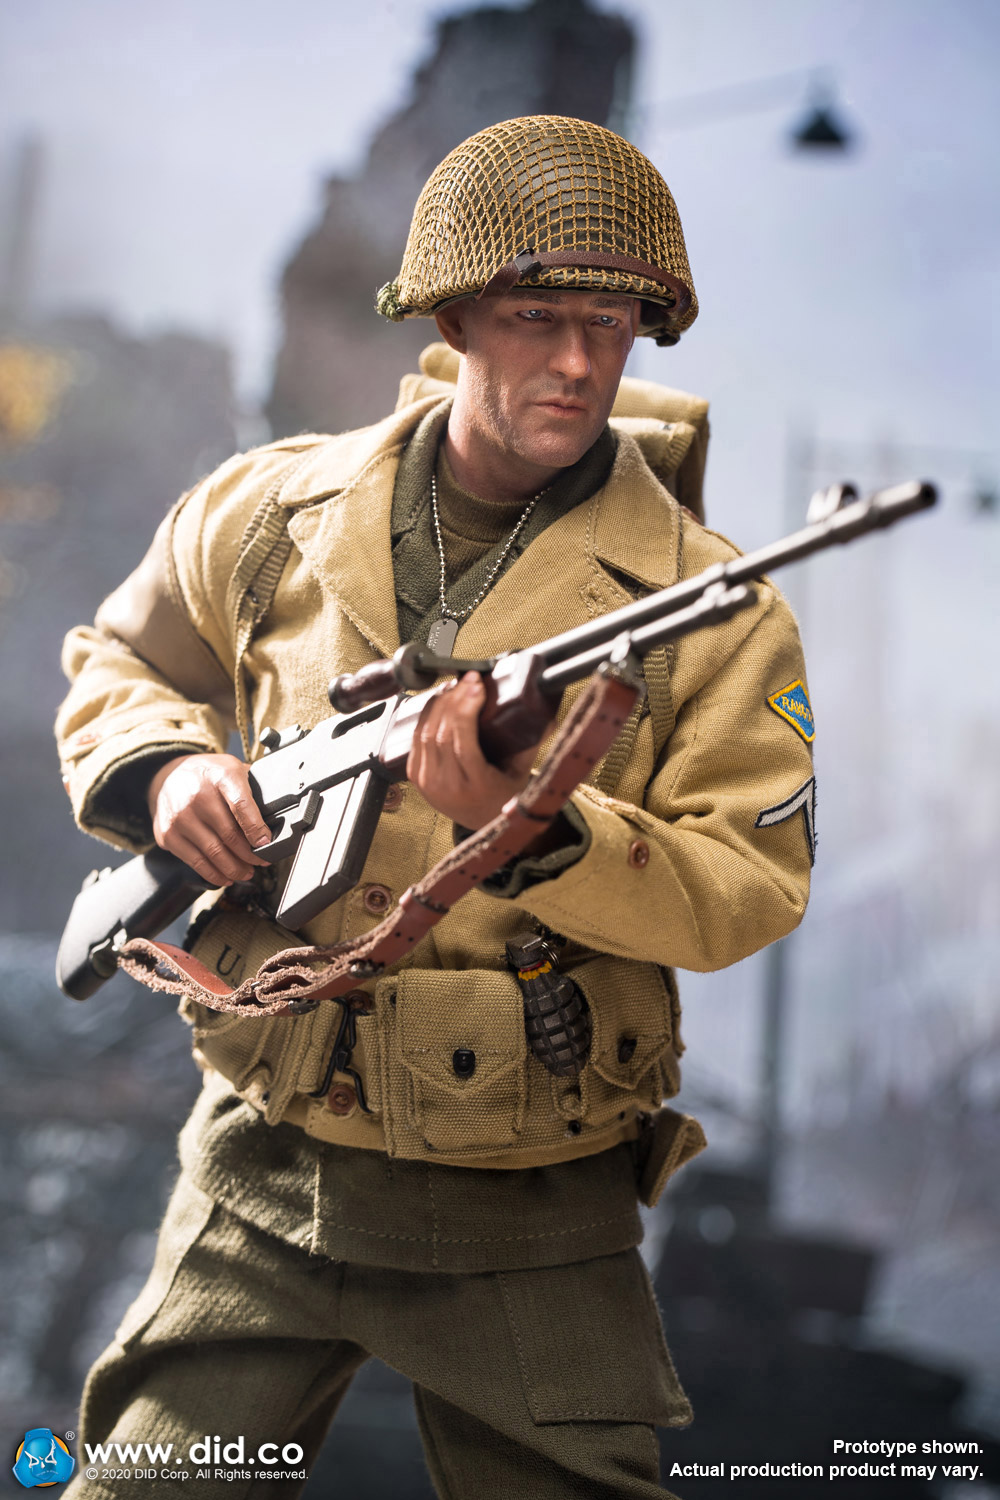 male - NEW PRODUCT: DiD: A80141 WWII US 2nd Ranger Battalion Private First Class Reiben 1/6 scale figure Did-pr17